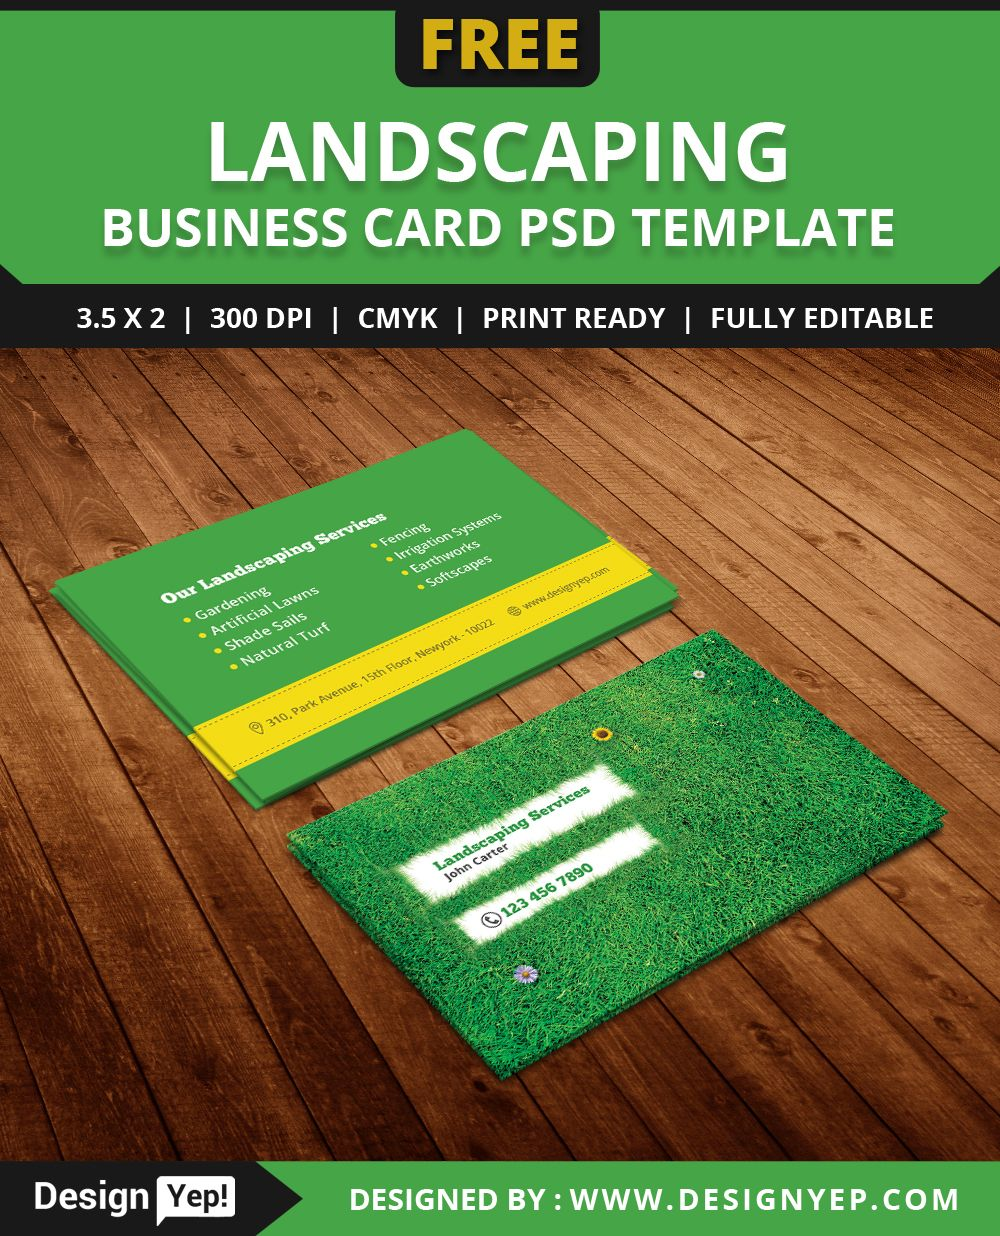 FreeLandscapingBusinessCardTemplatePSD Free Business Card - Landscaping business card template